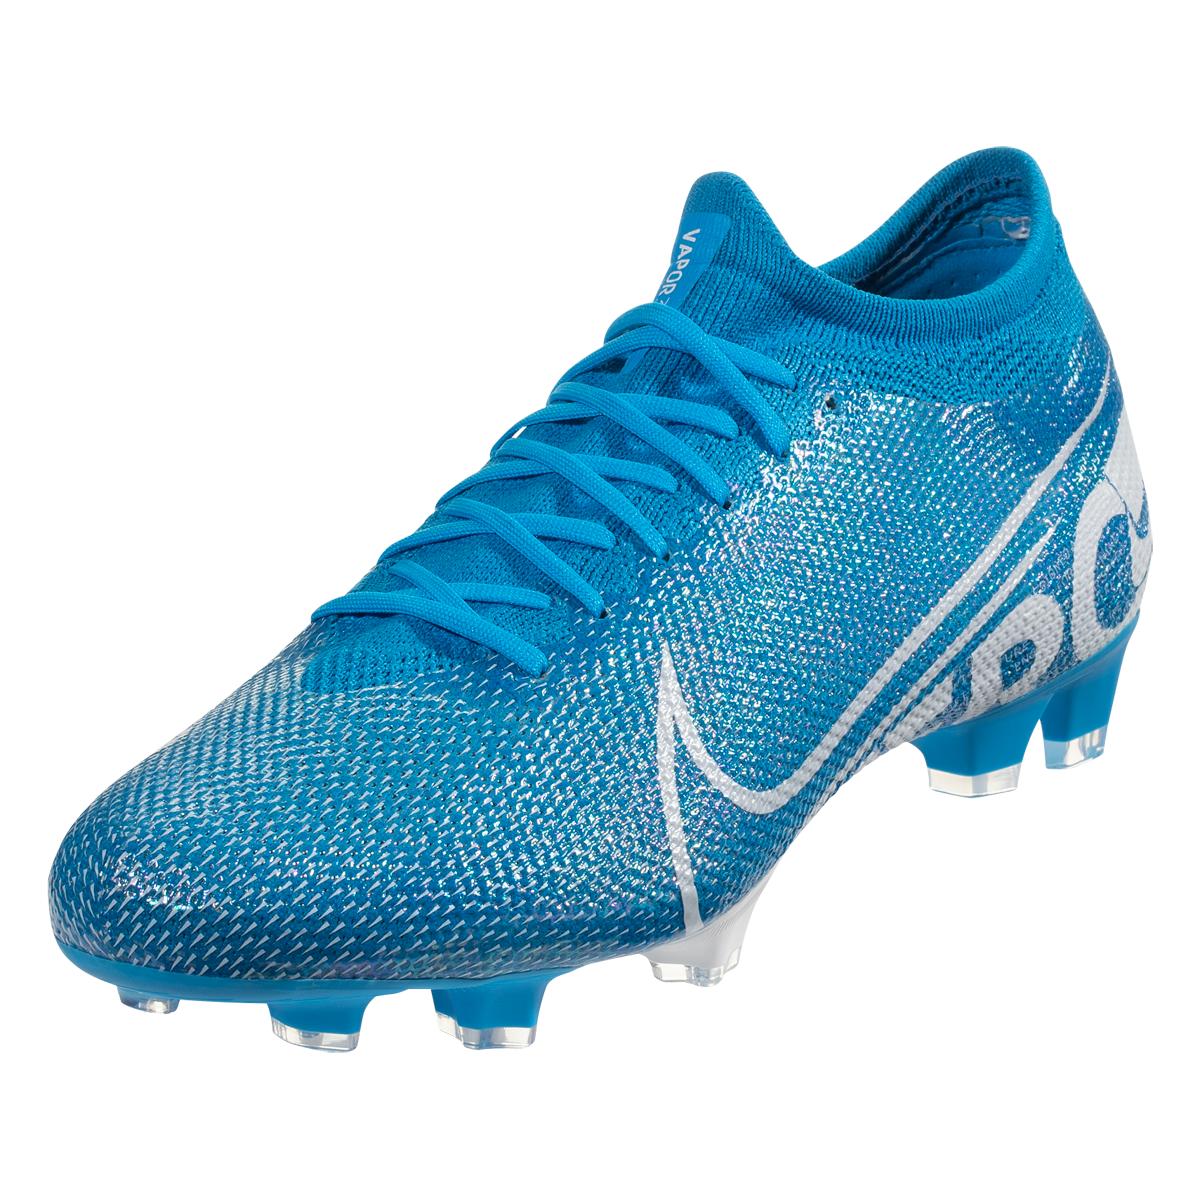 Nike Mercurial Vapor 13 Pro Fg Soccer Cleat Blue Hero White Obsidian 11 5 In 2020 Best Soccer Cleats Soccer Boots Soccer Shoes